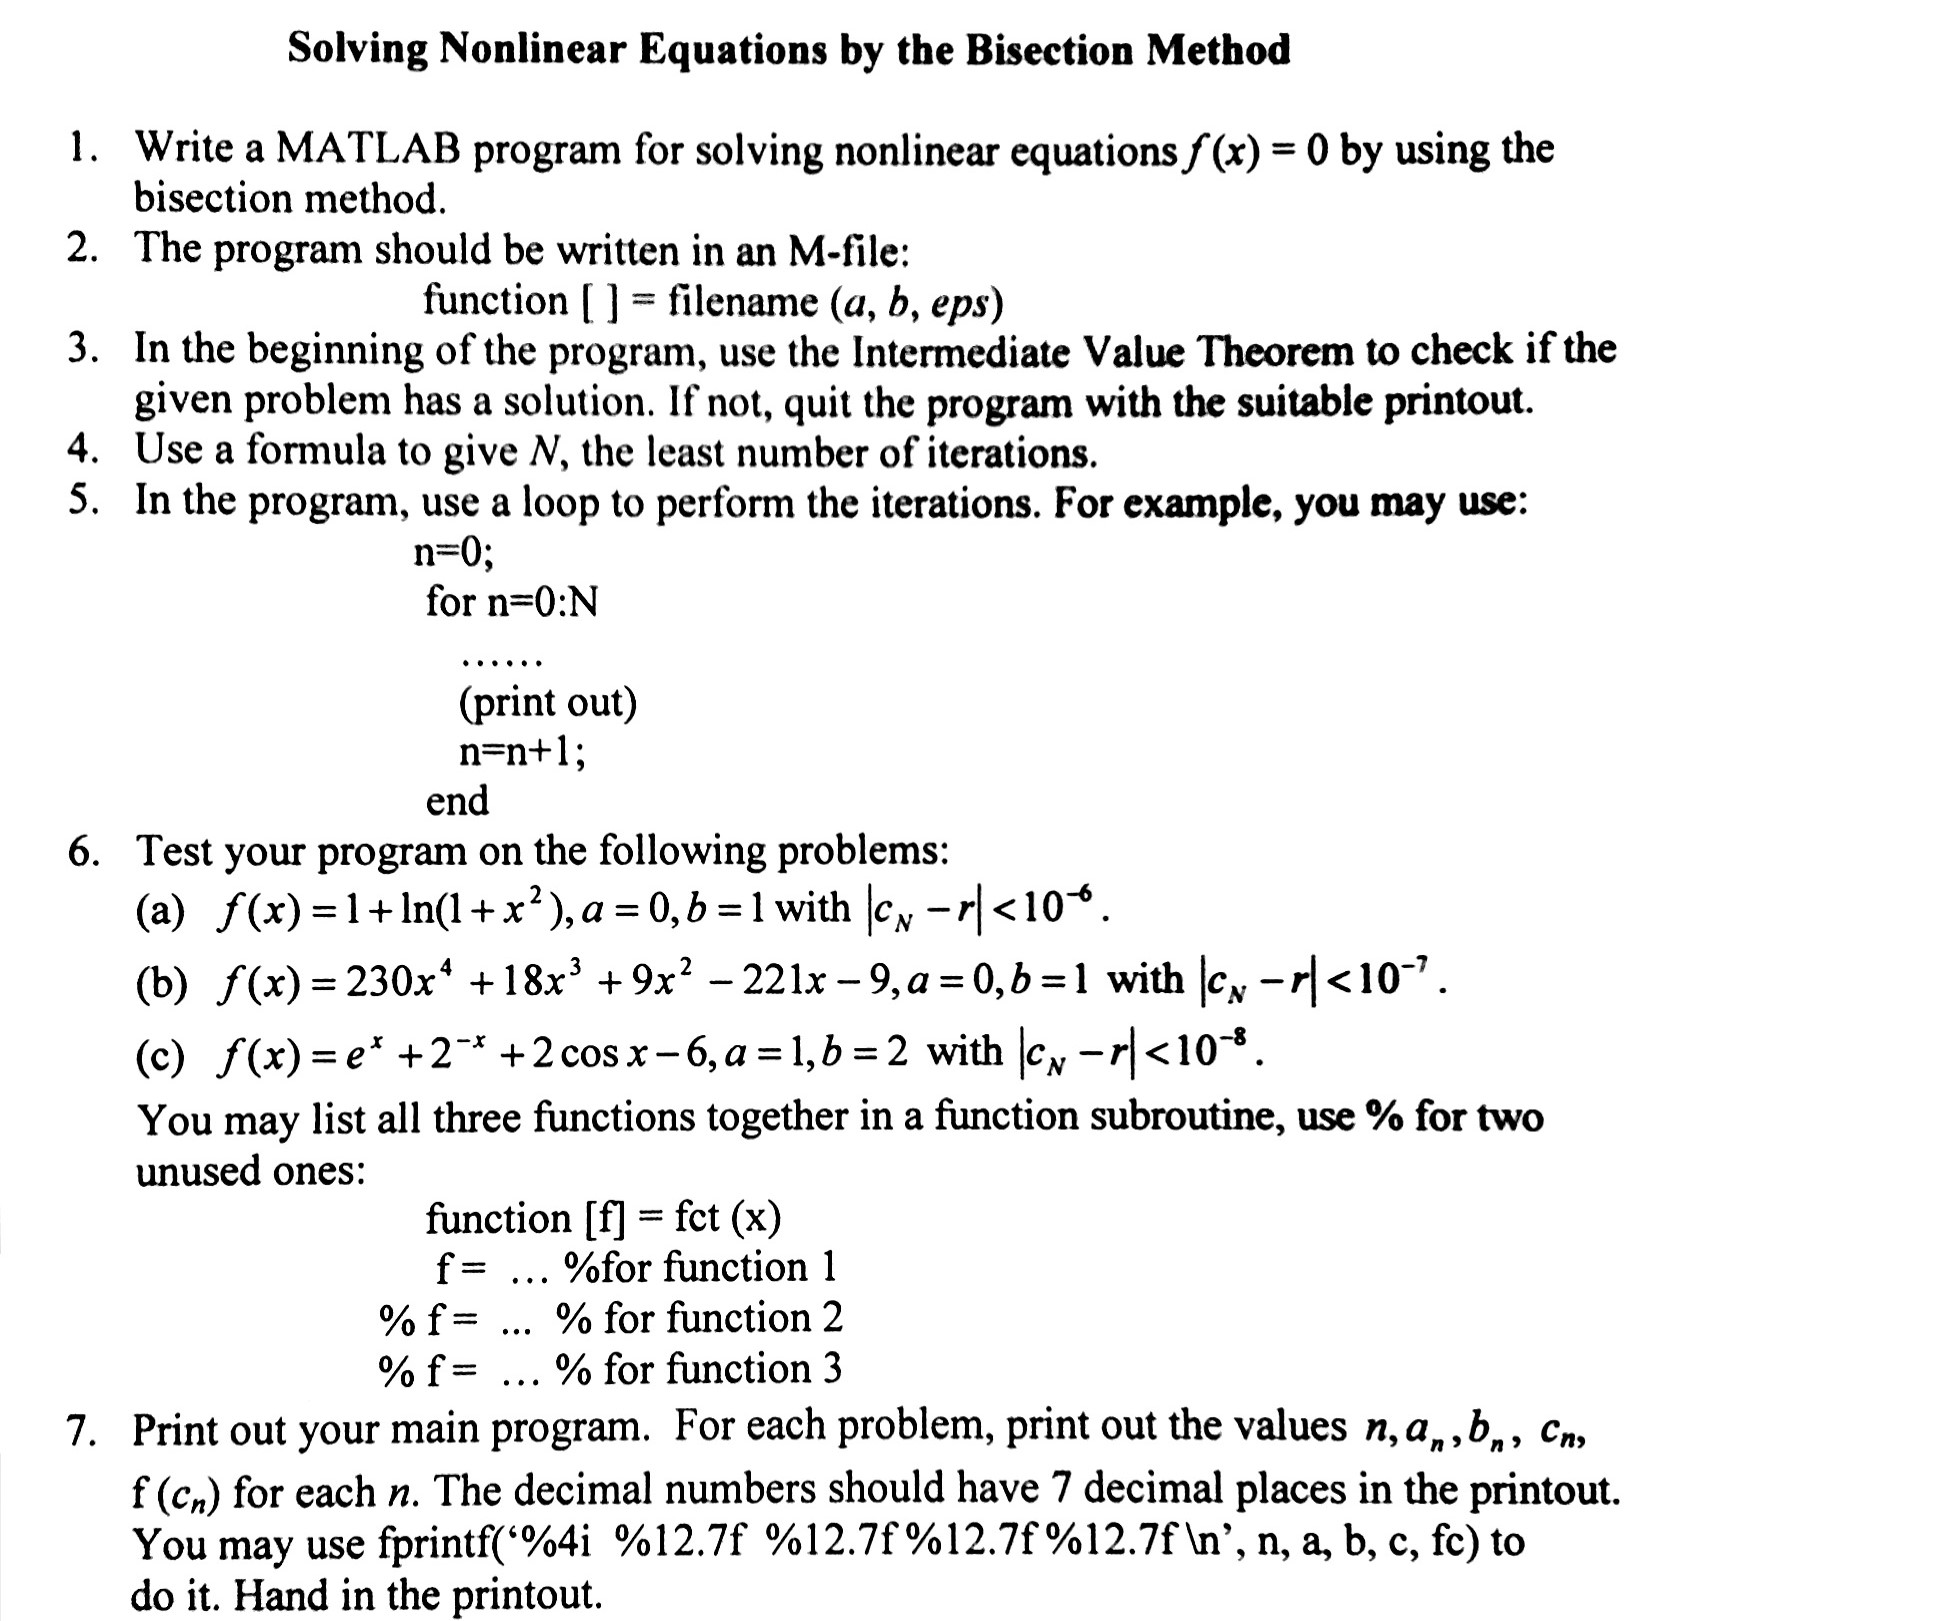 solved: solving nonlinear equations by the bisection metho